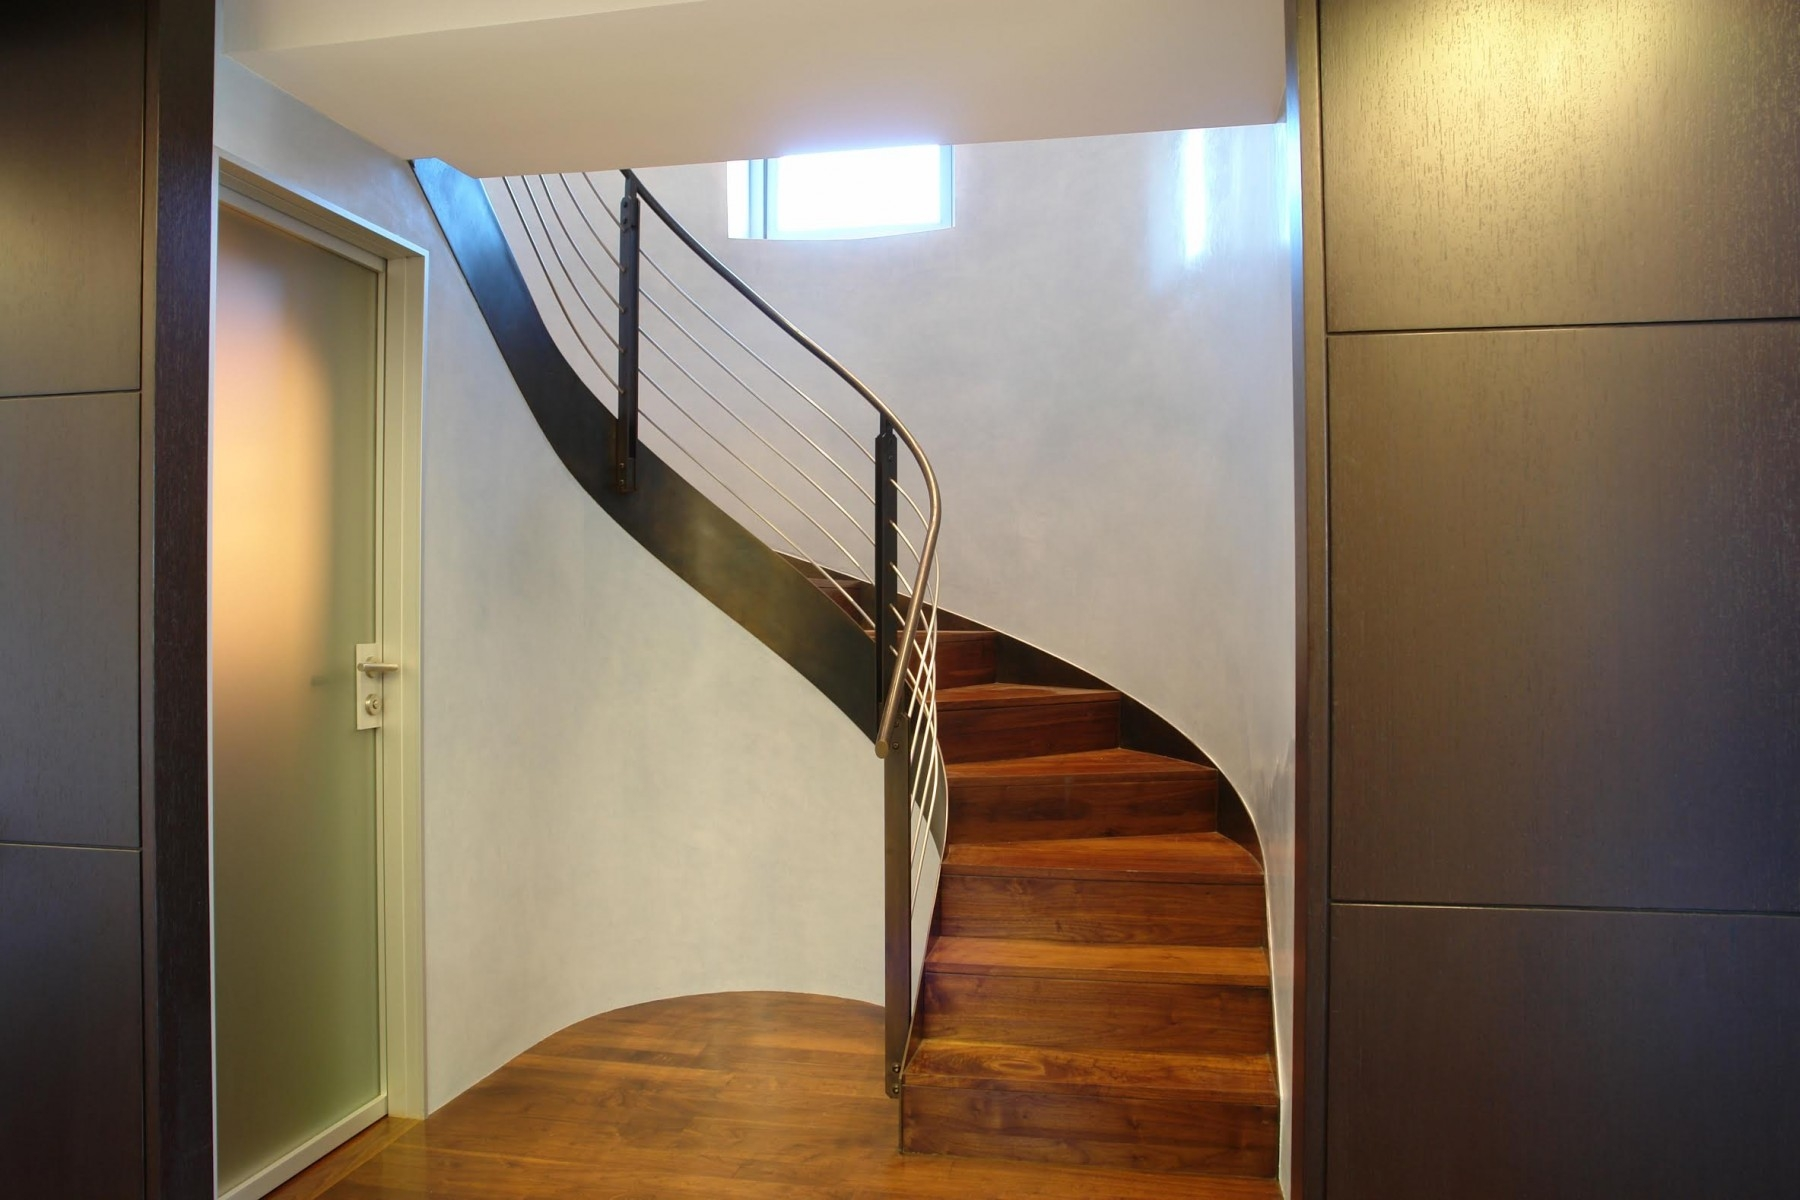 Spiral Staircase Alternatives For Your Nyc Duplex Renovation   Building A Curved Staircase   Indoor   36 Inch Diameter   Garage   Circular   Outside